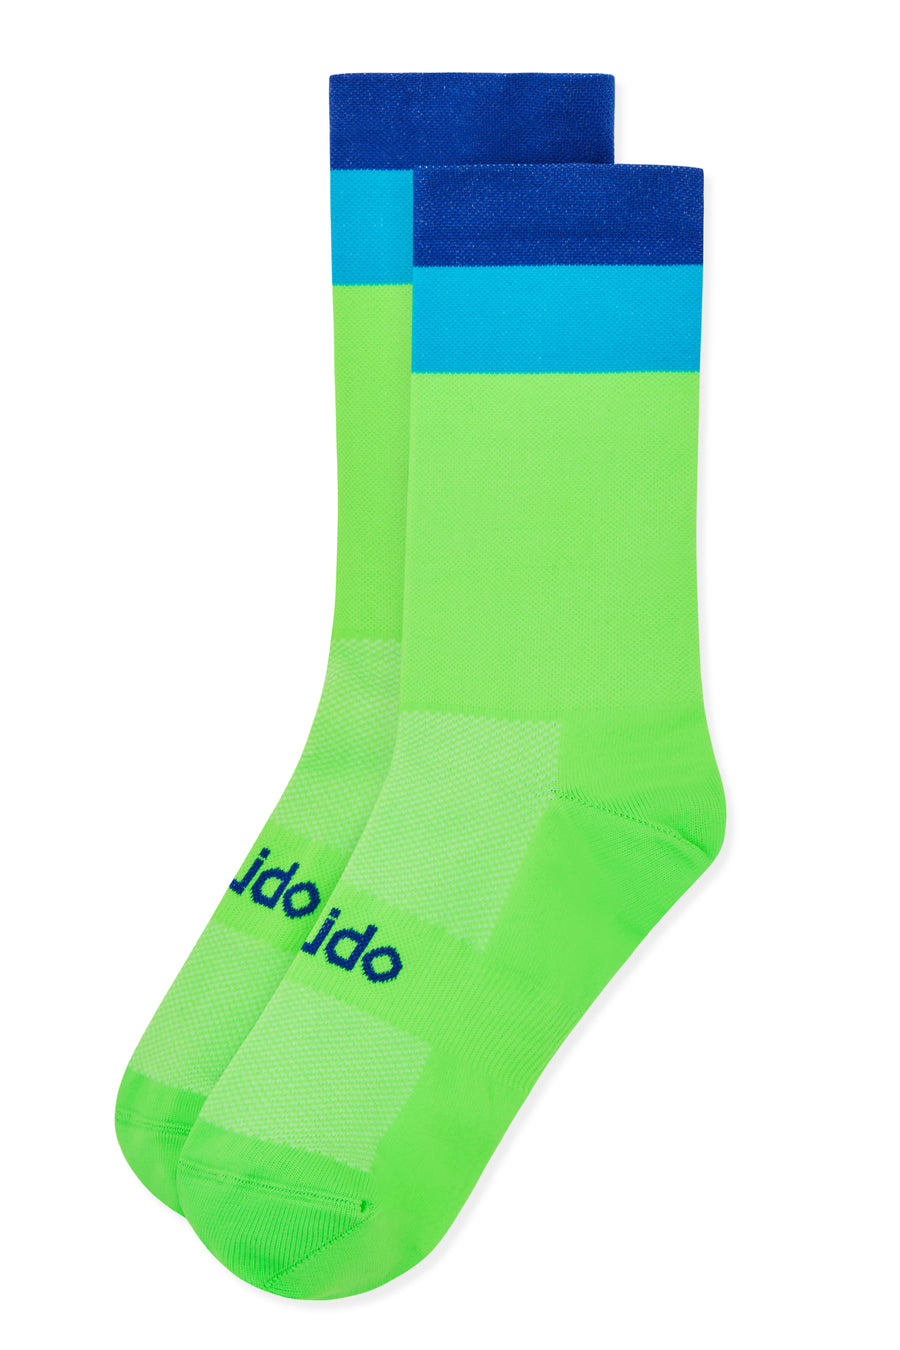 Fluro Green bicycle Cycling Socks